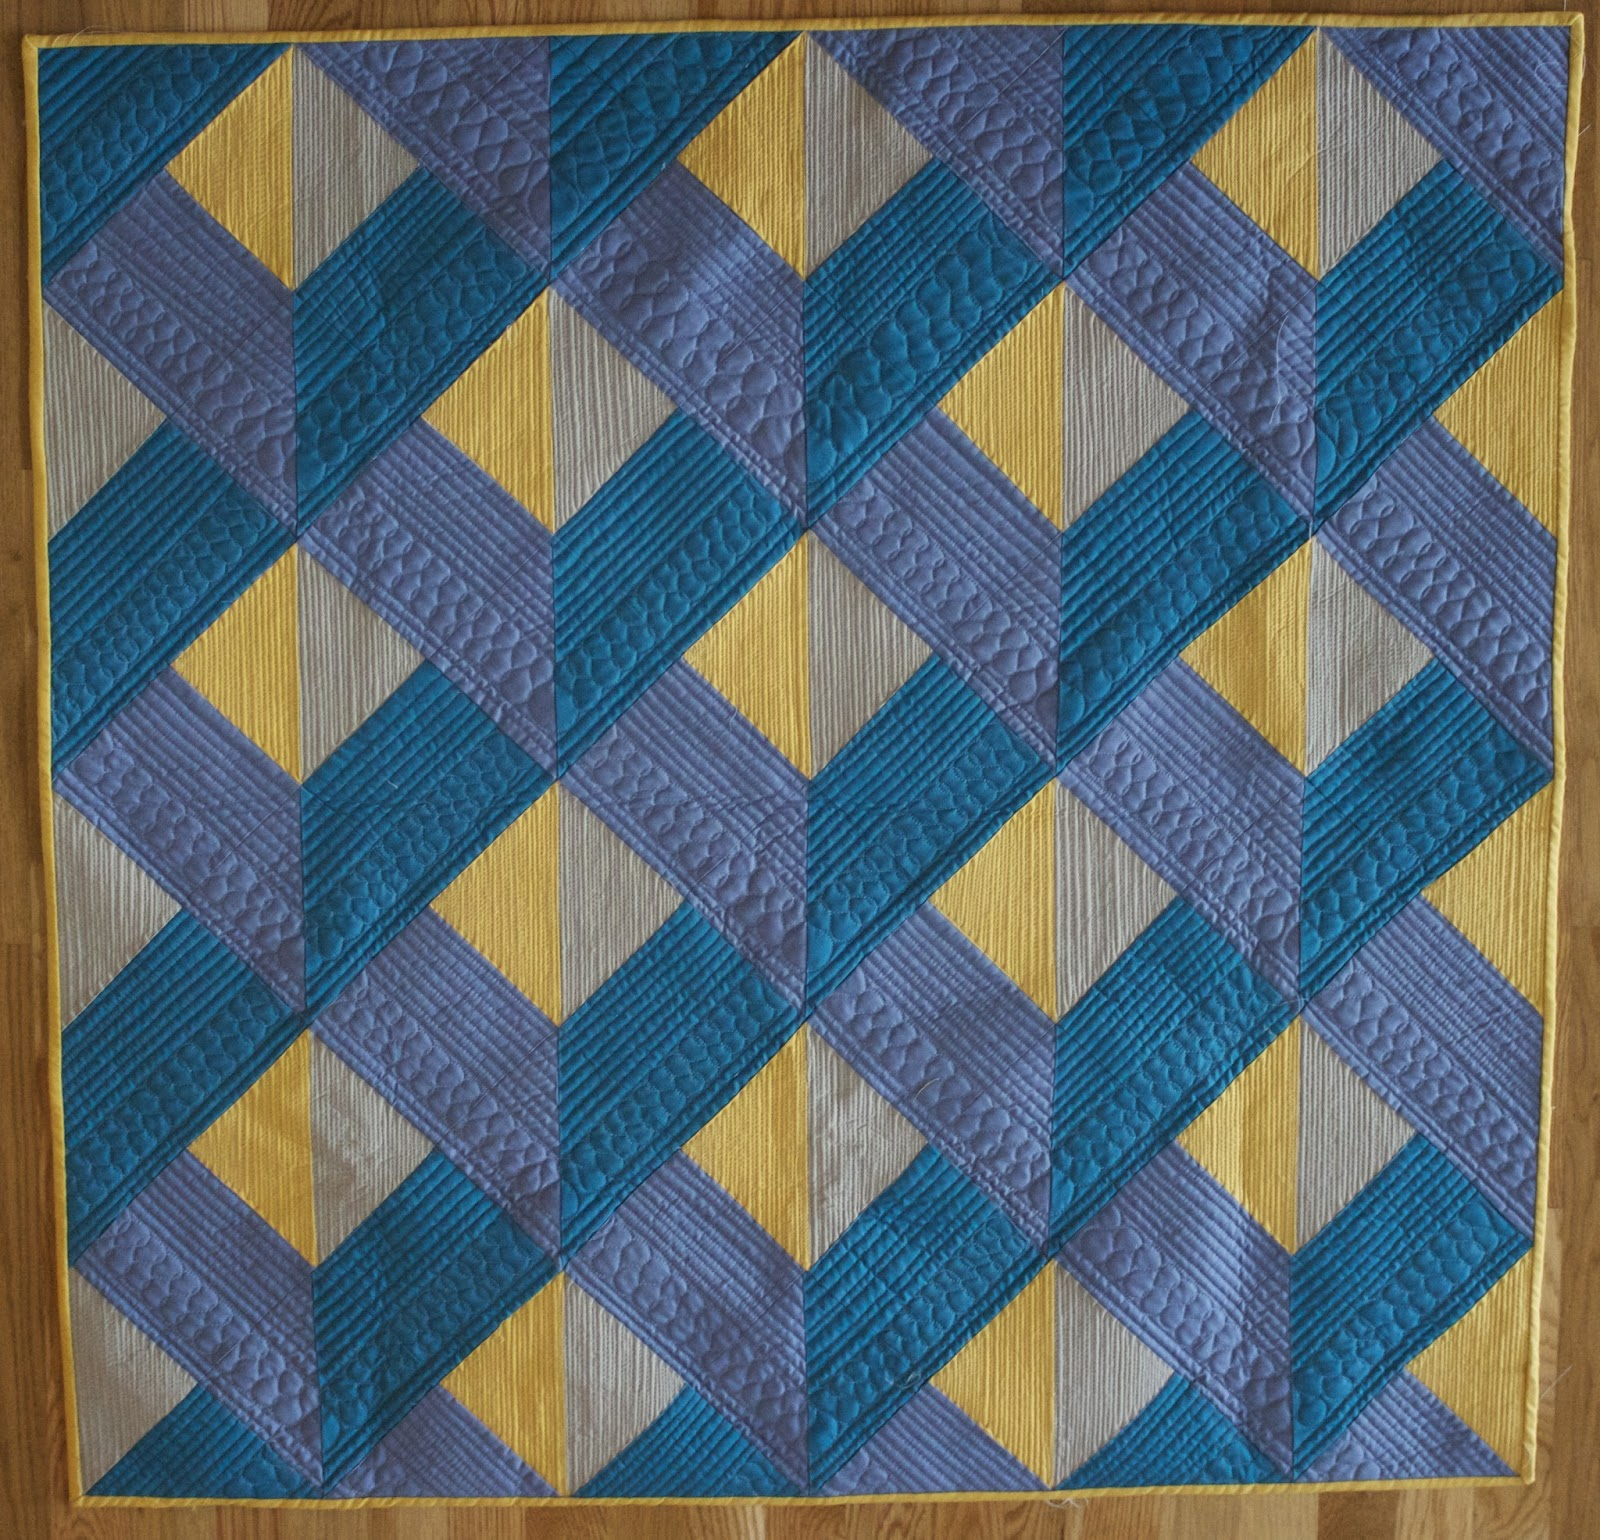 Quilt inspiration free pattern day attic windows quilts for Window quilt